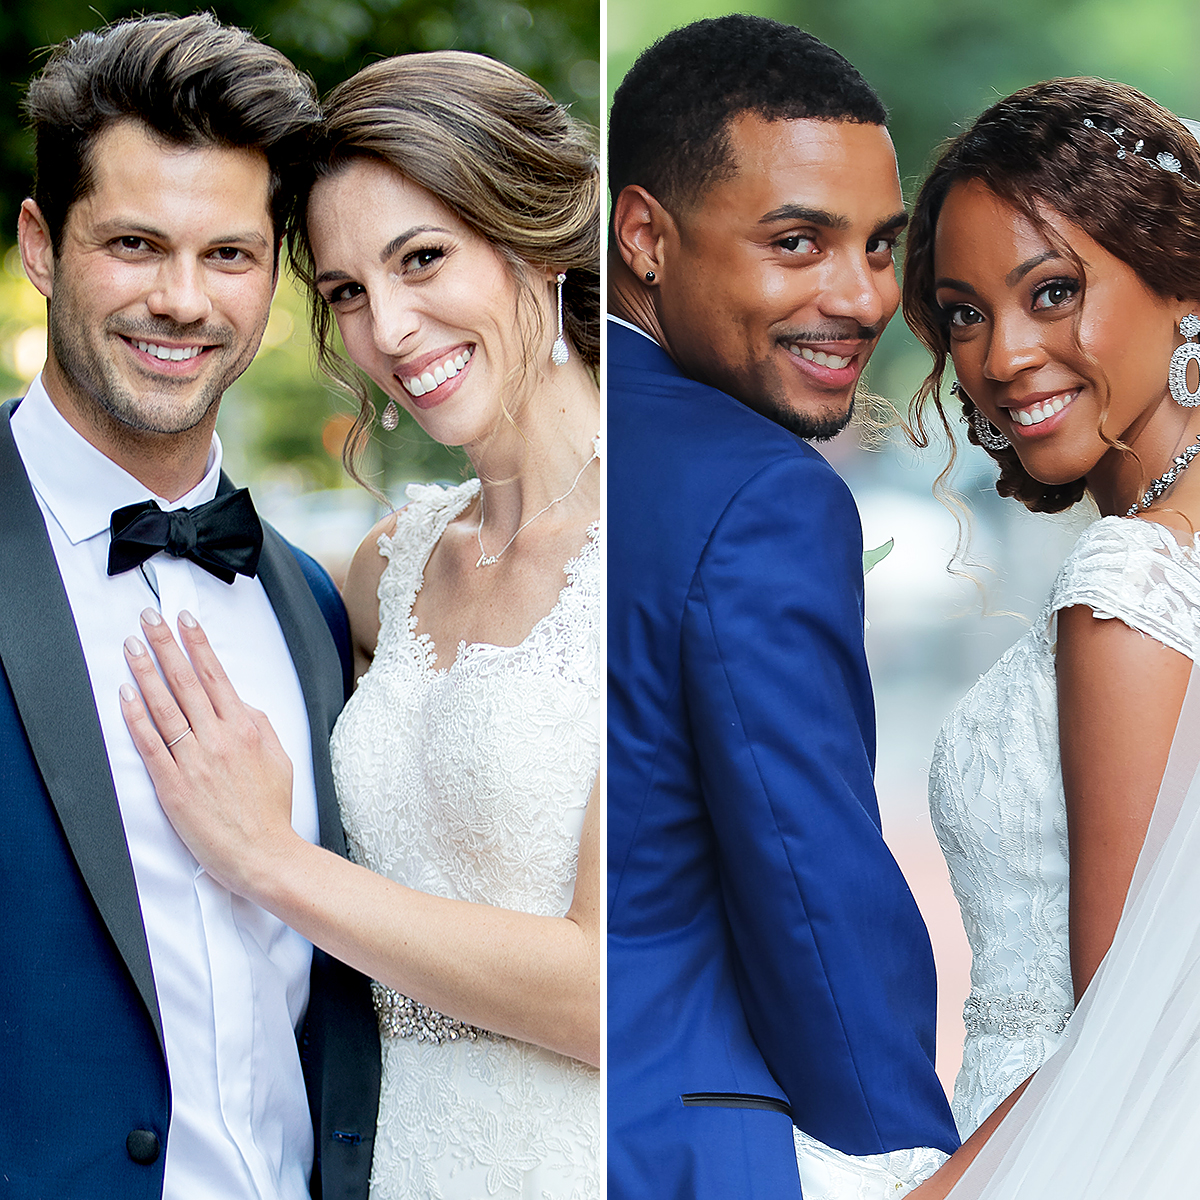 Meka and Michael on Married at First Sight Season 10: Here's details of who else is in the cast?